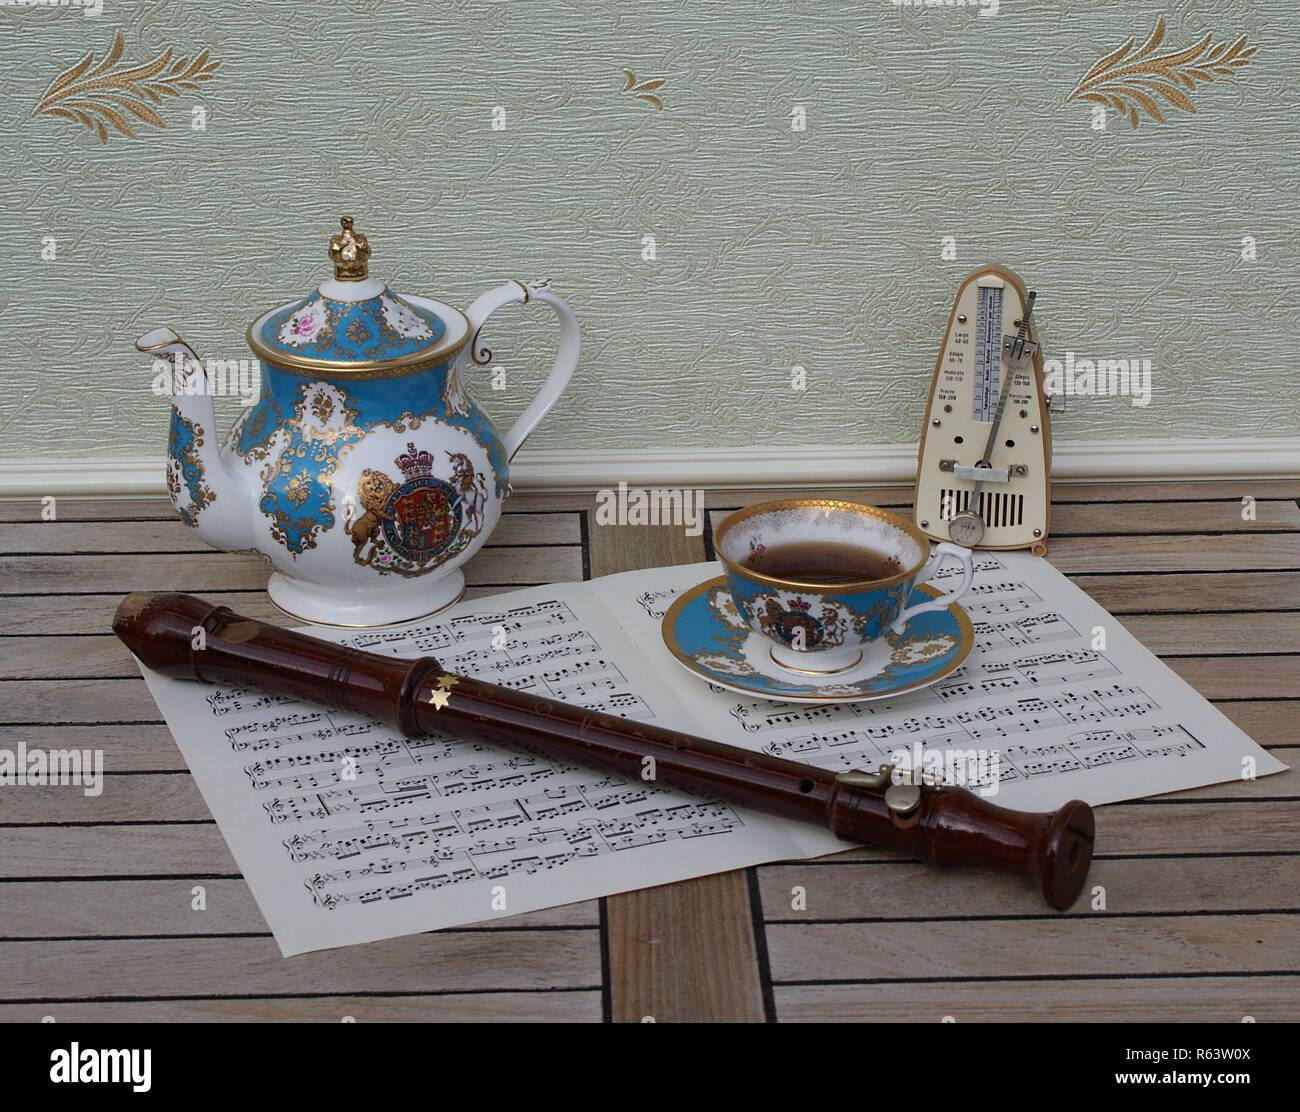 English teacup with saucer and teapot, fine bone china porcelain, metronome for music and a block flute on a sheet of music - Stock Image